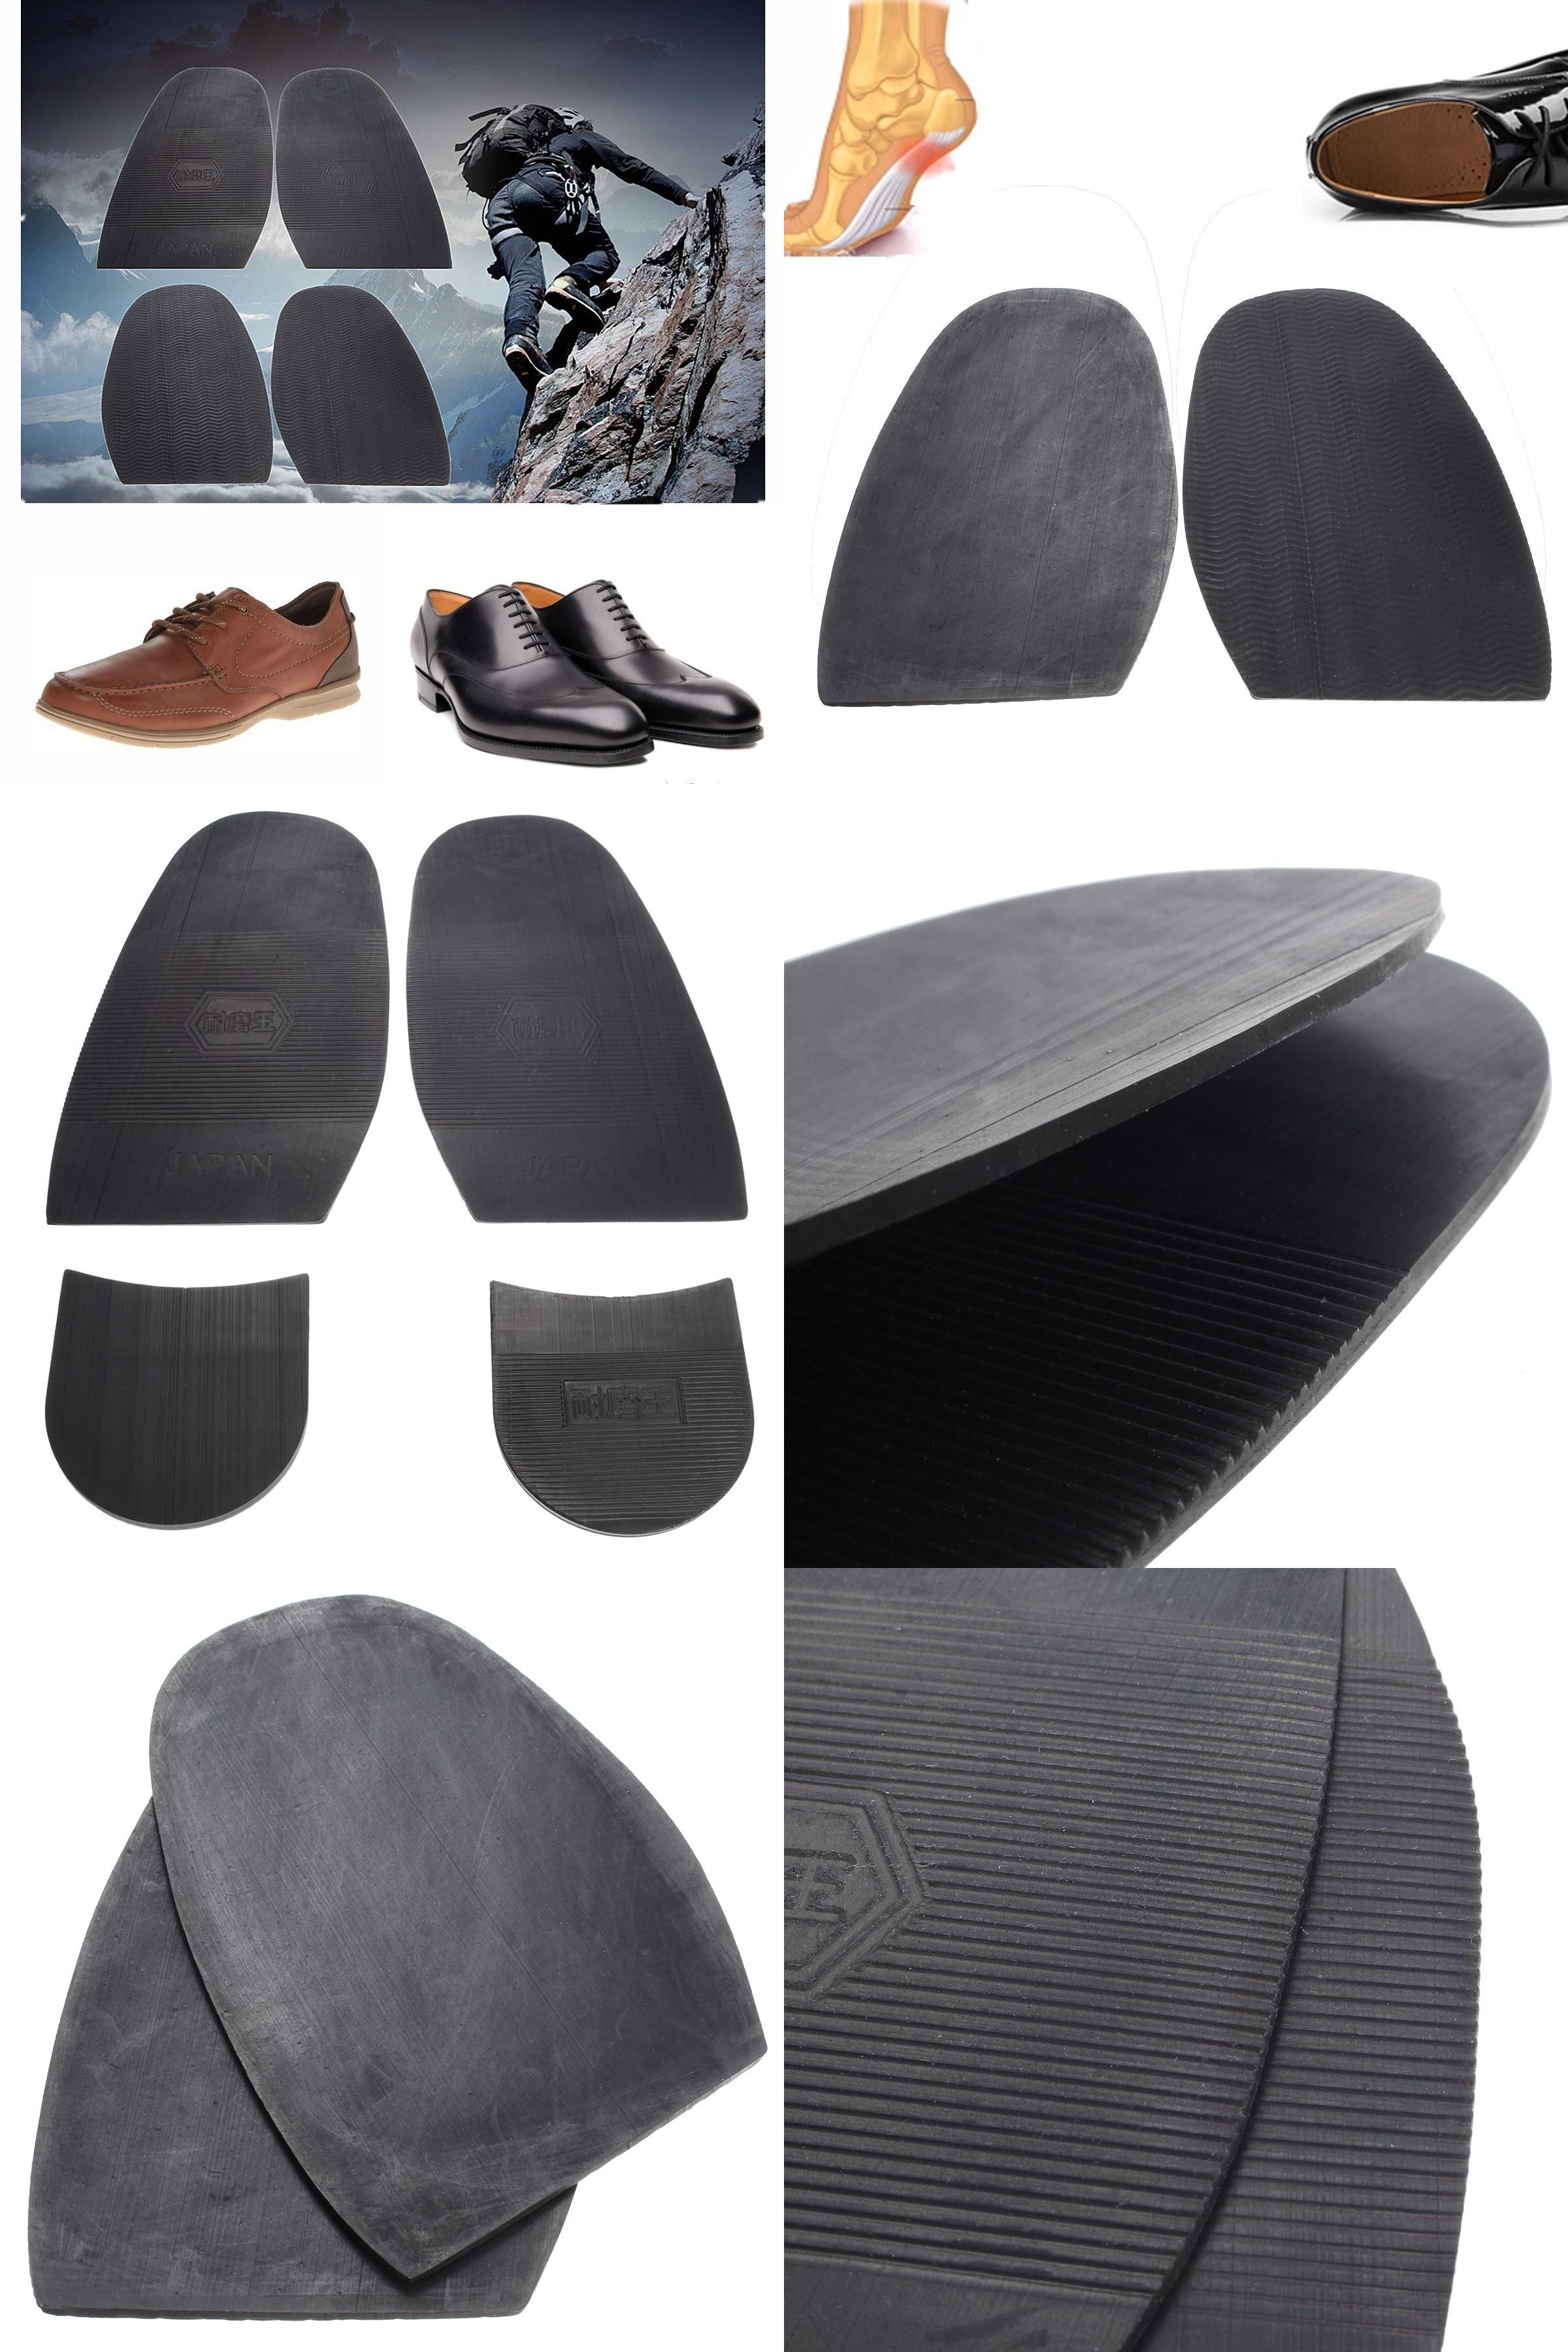 Mens Diy Anti Slip Stick On Soles